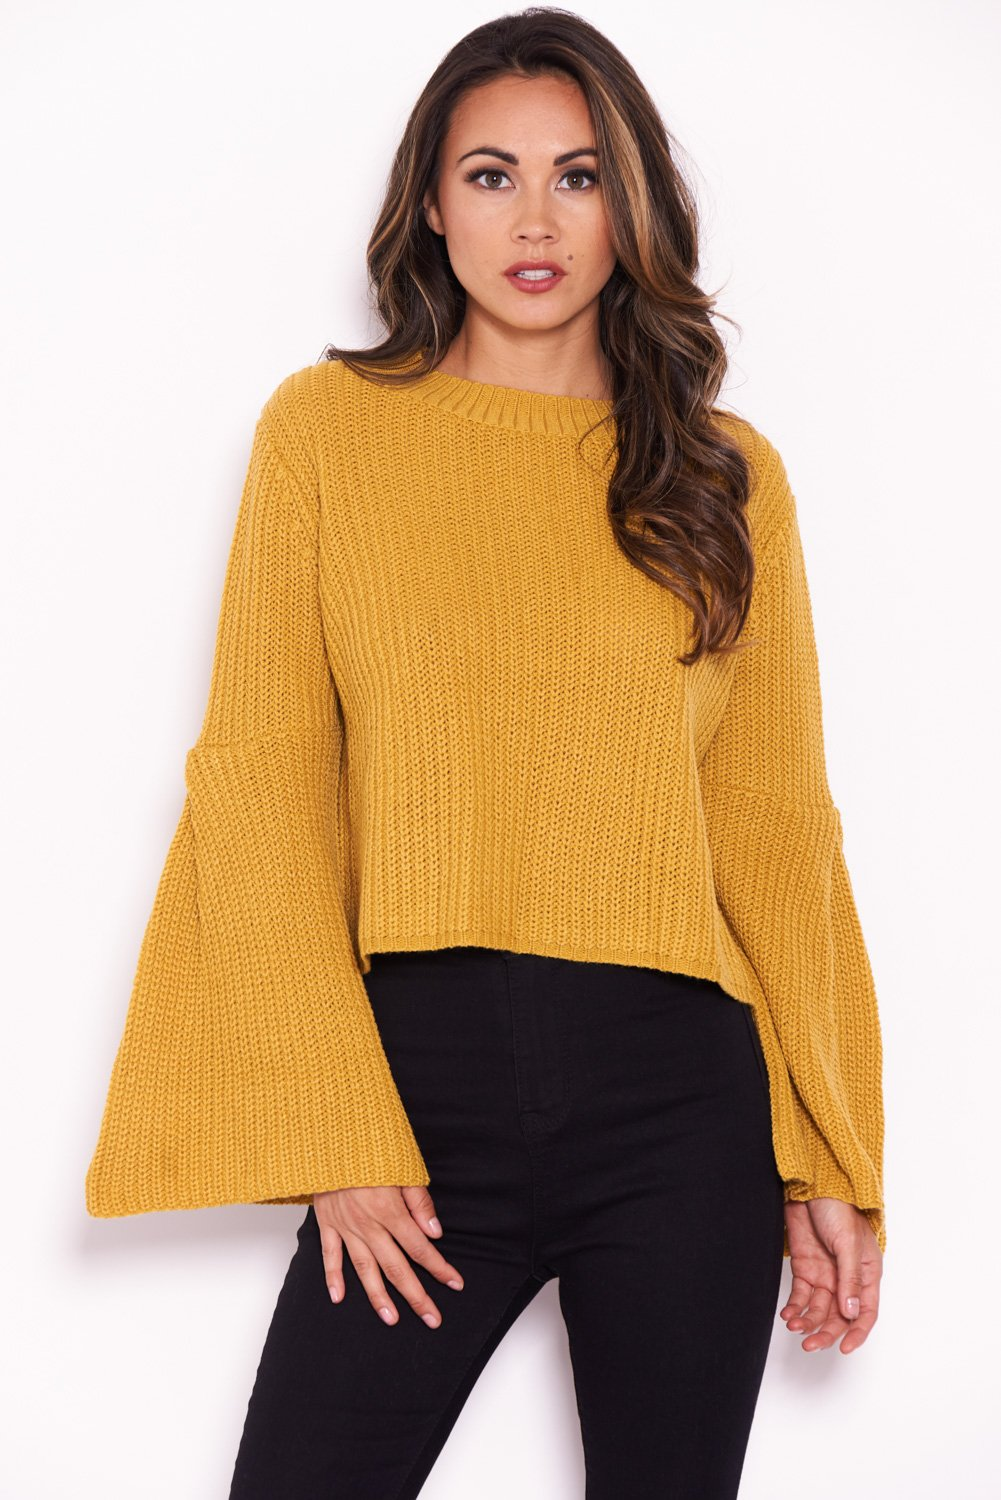 a799d3a75f5 AX Paris Womens Mustard Flare Sleeve Knitted Jumper Ladies Casual ...